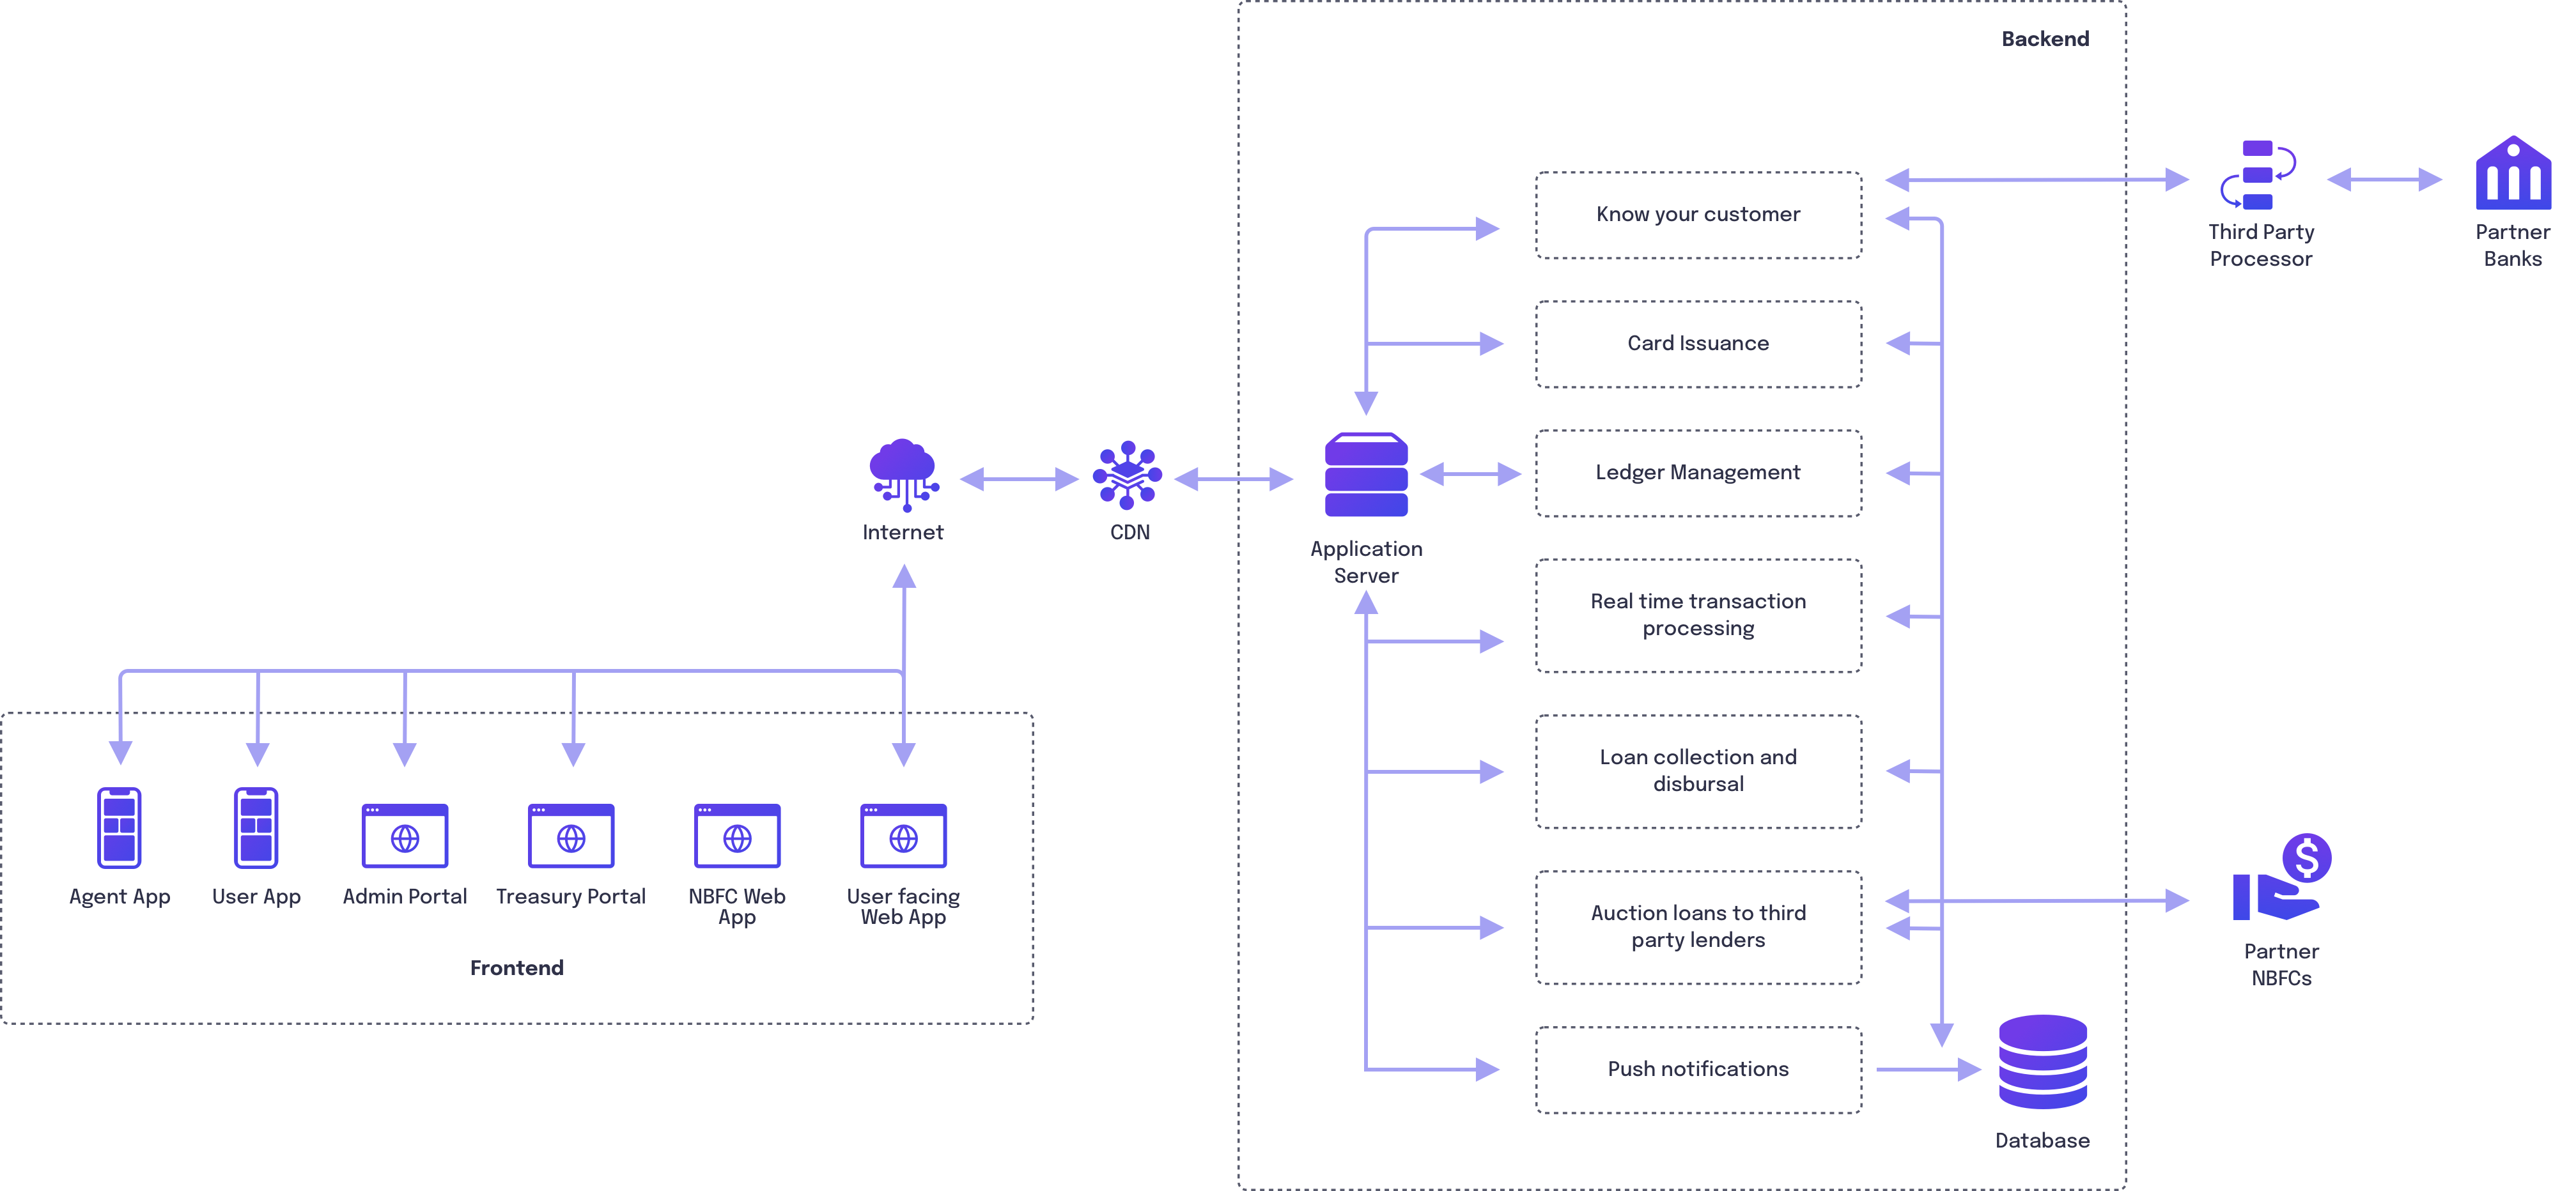 System Architecture diagram of a leading fintech company in Asia